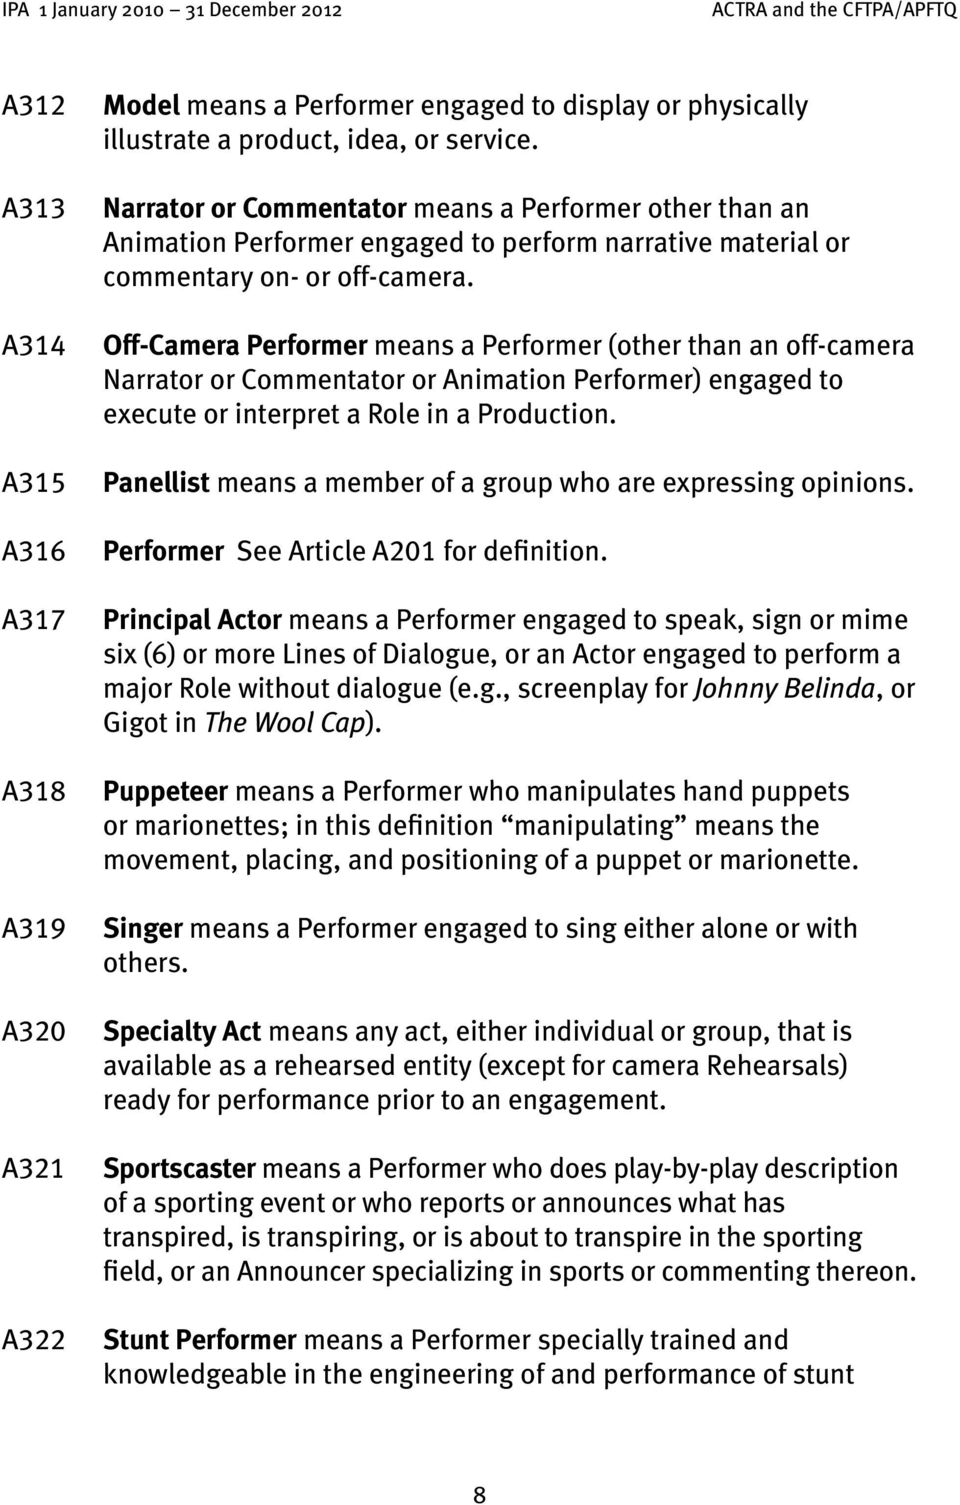 Off-Camera Performer means a Performer (other than an off-camera Narrator or Commentator or Animation Performer) engaged to execute or interpret a Role in a Production.